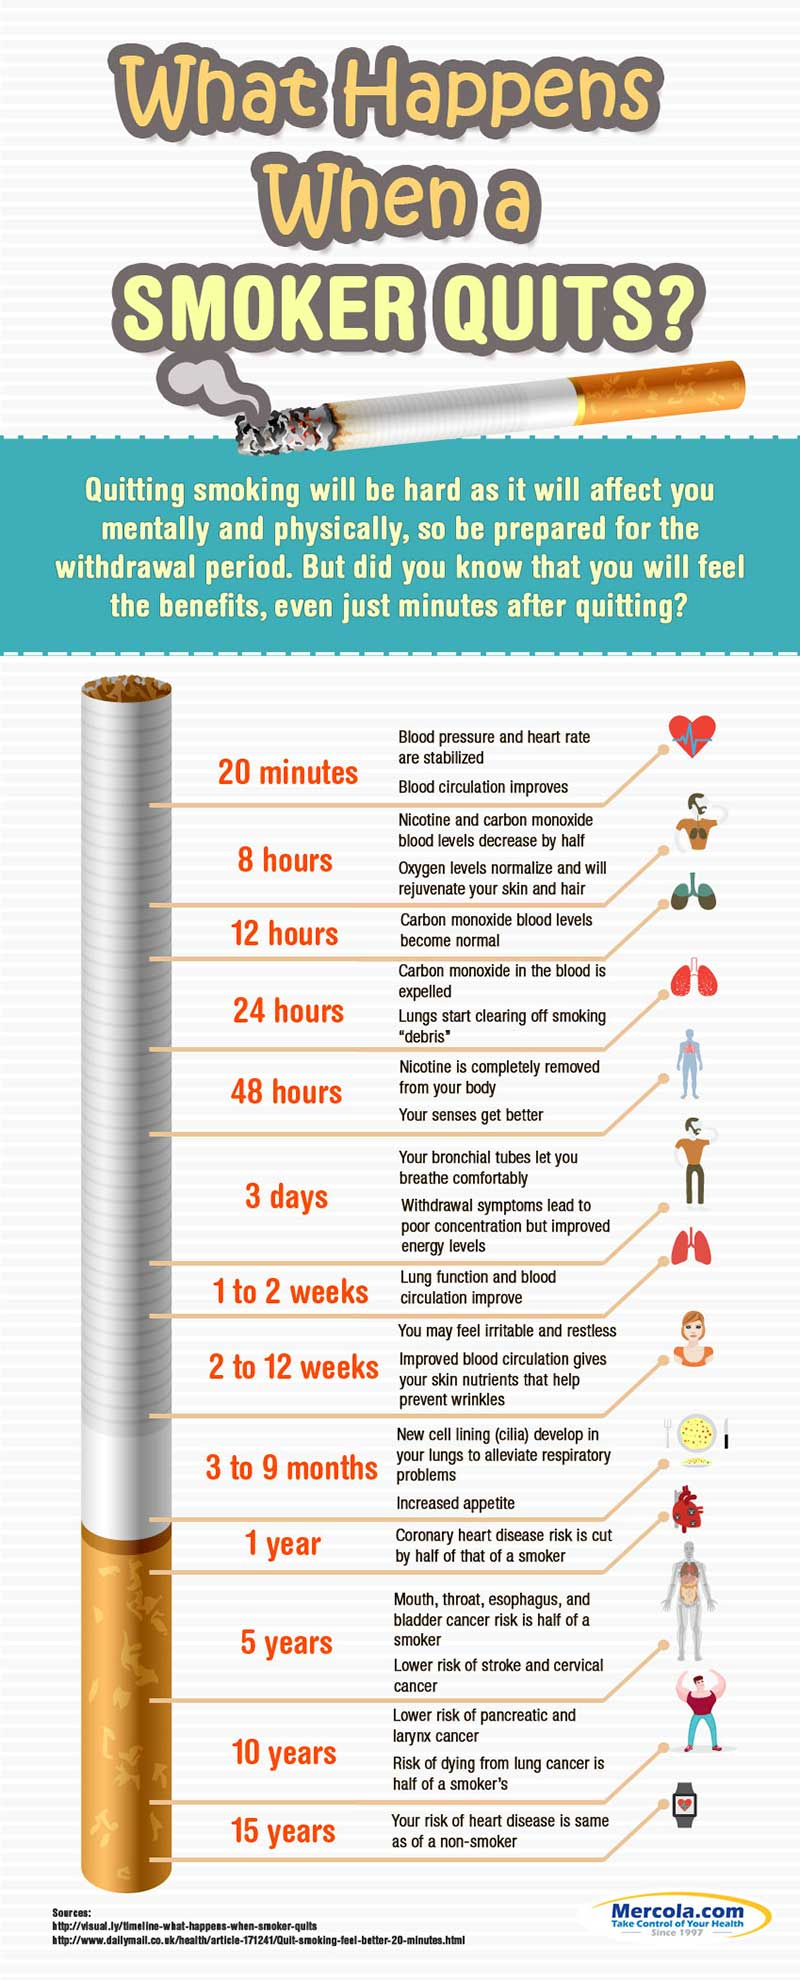 quit-smoking-easy-minnesota-mpls-clinical-help-ethanwise